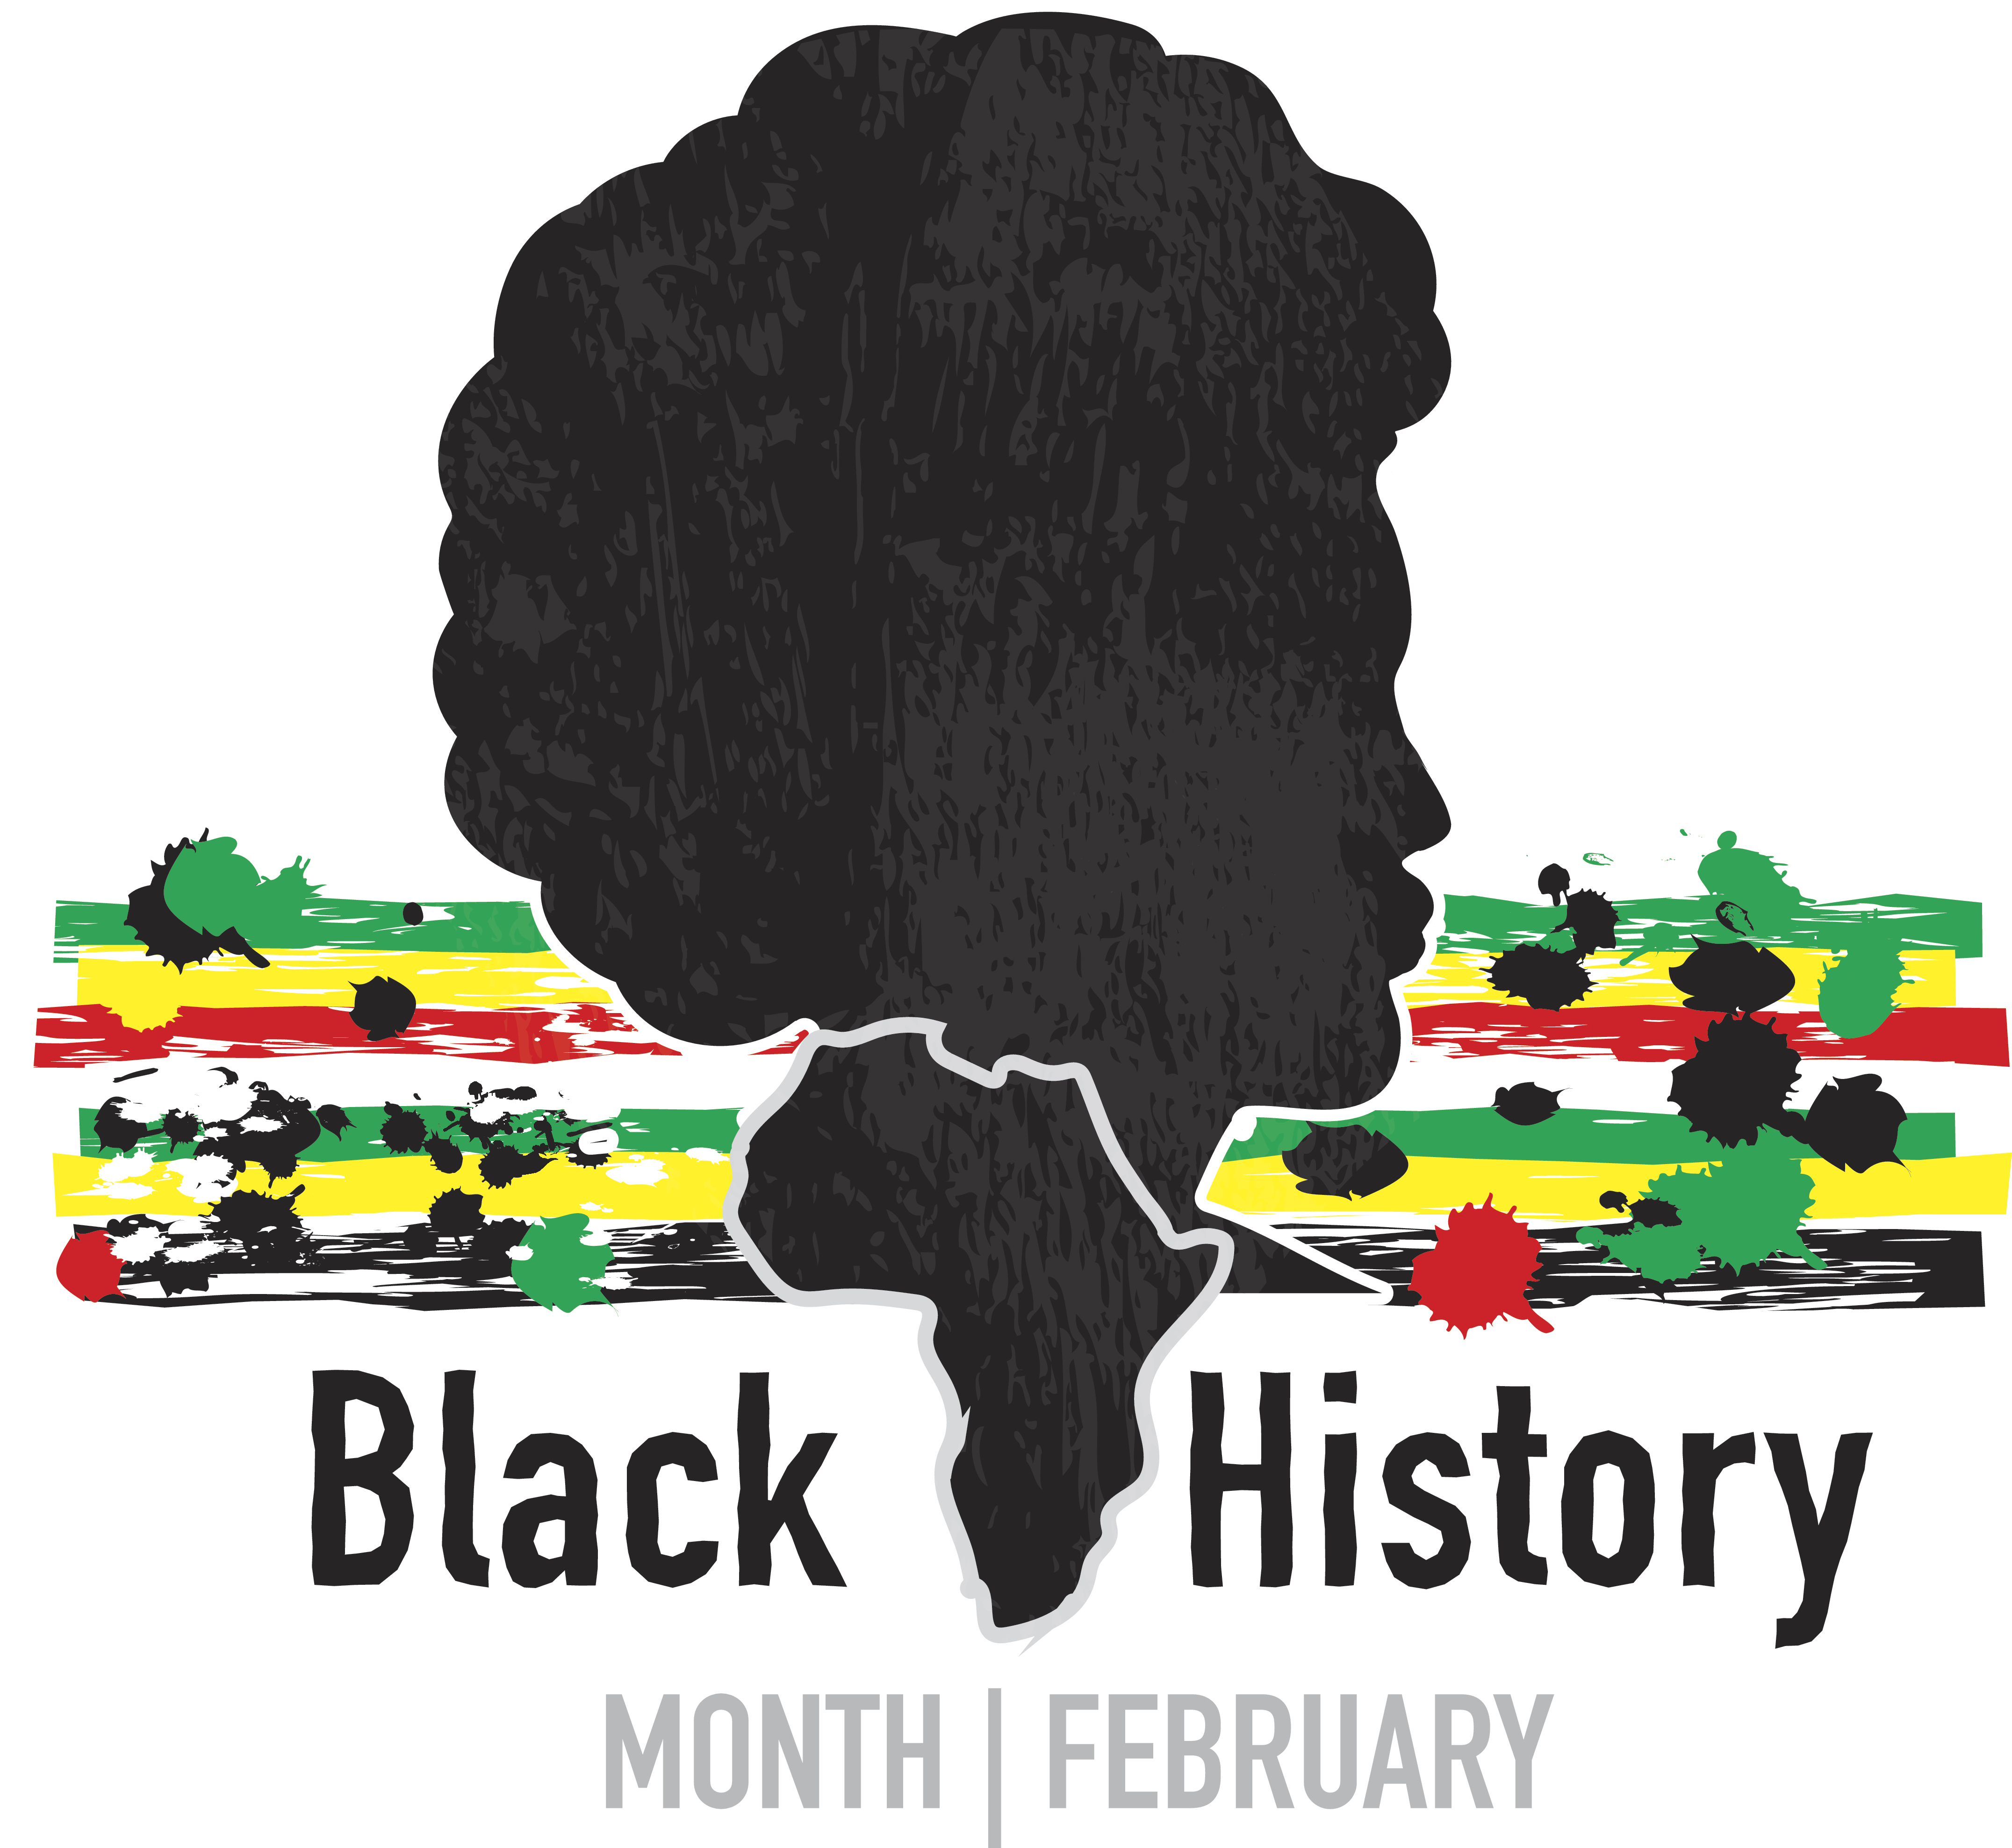 Black History month emblem design with side view of man